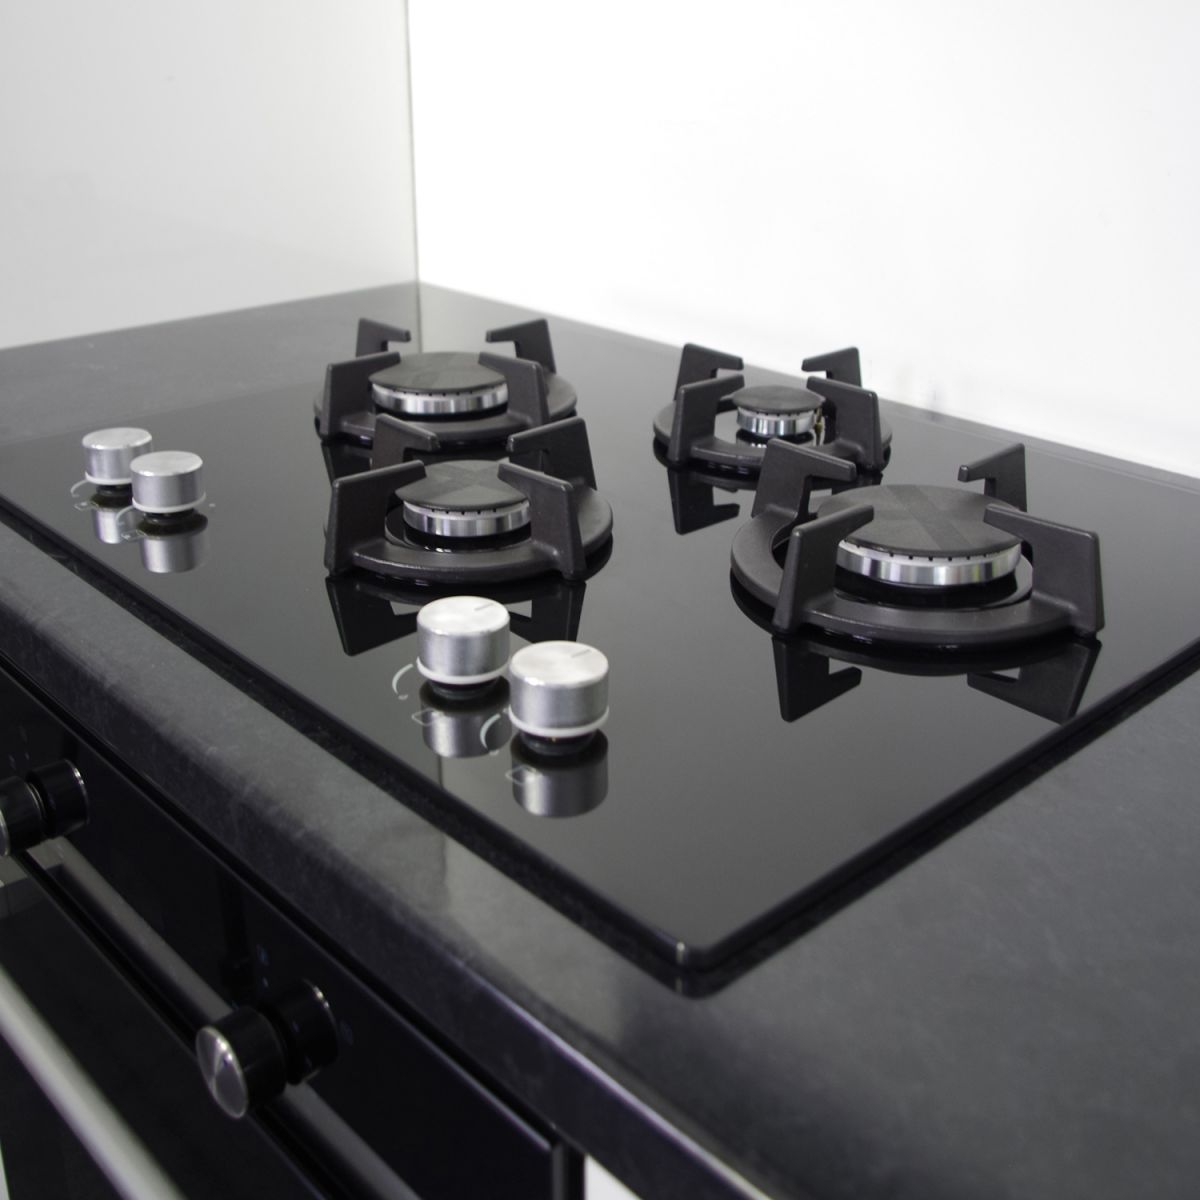 kitchen appliances ebay uk with 271457903123 on 252951845098 also 151551137246 besides 201522629671 moreover 553590979167377545 as well 252734922598.